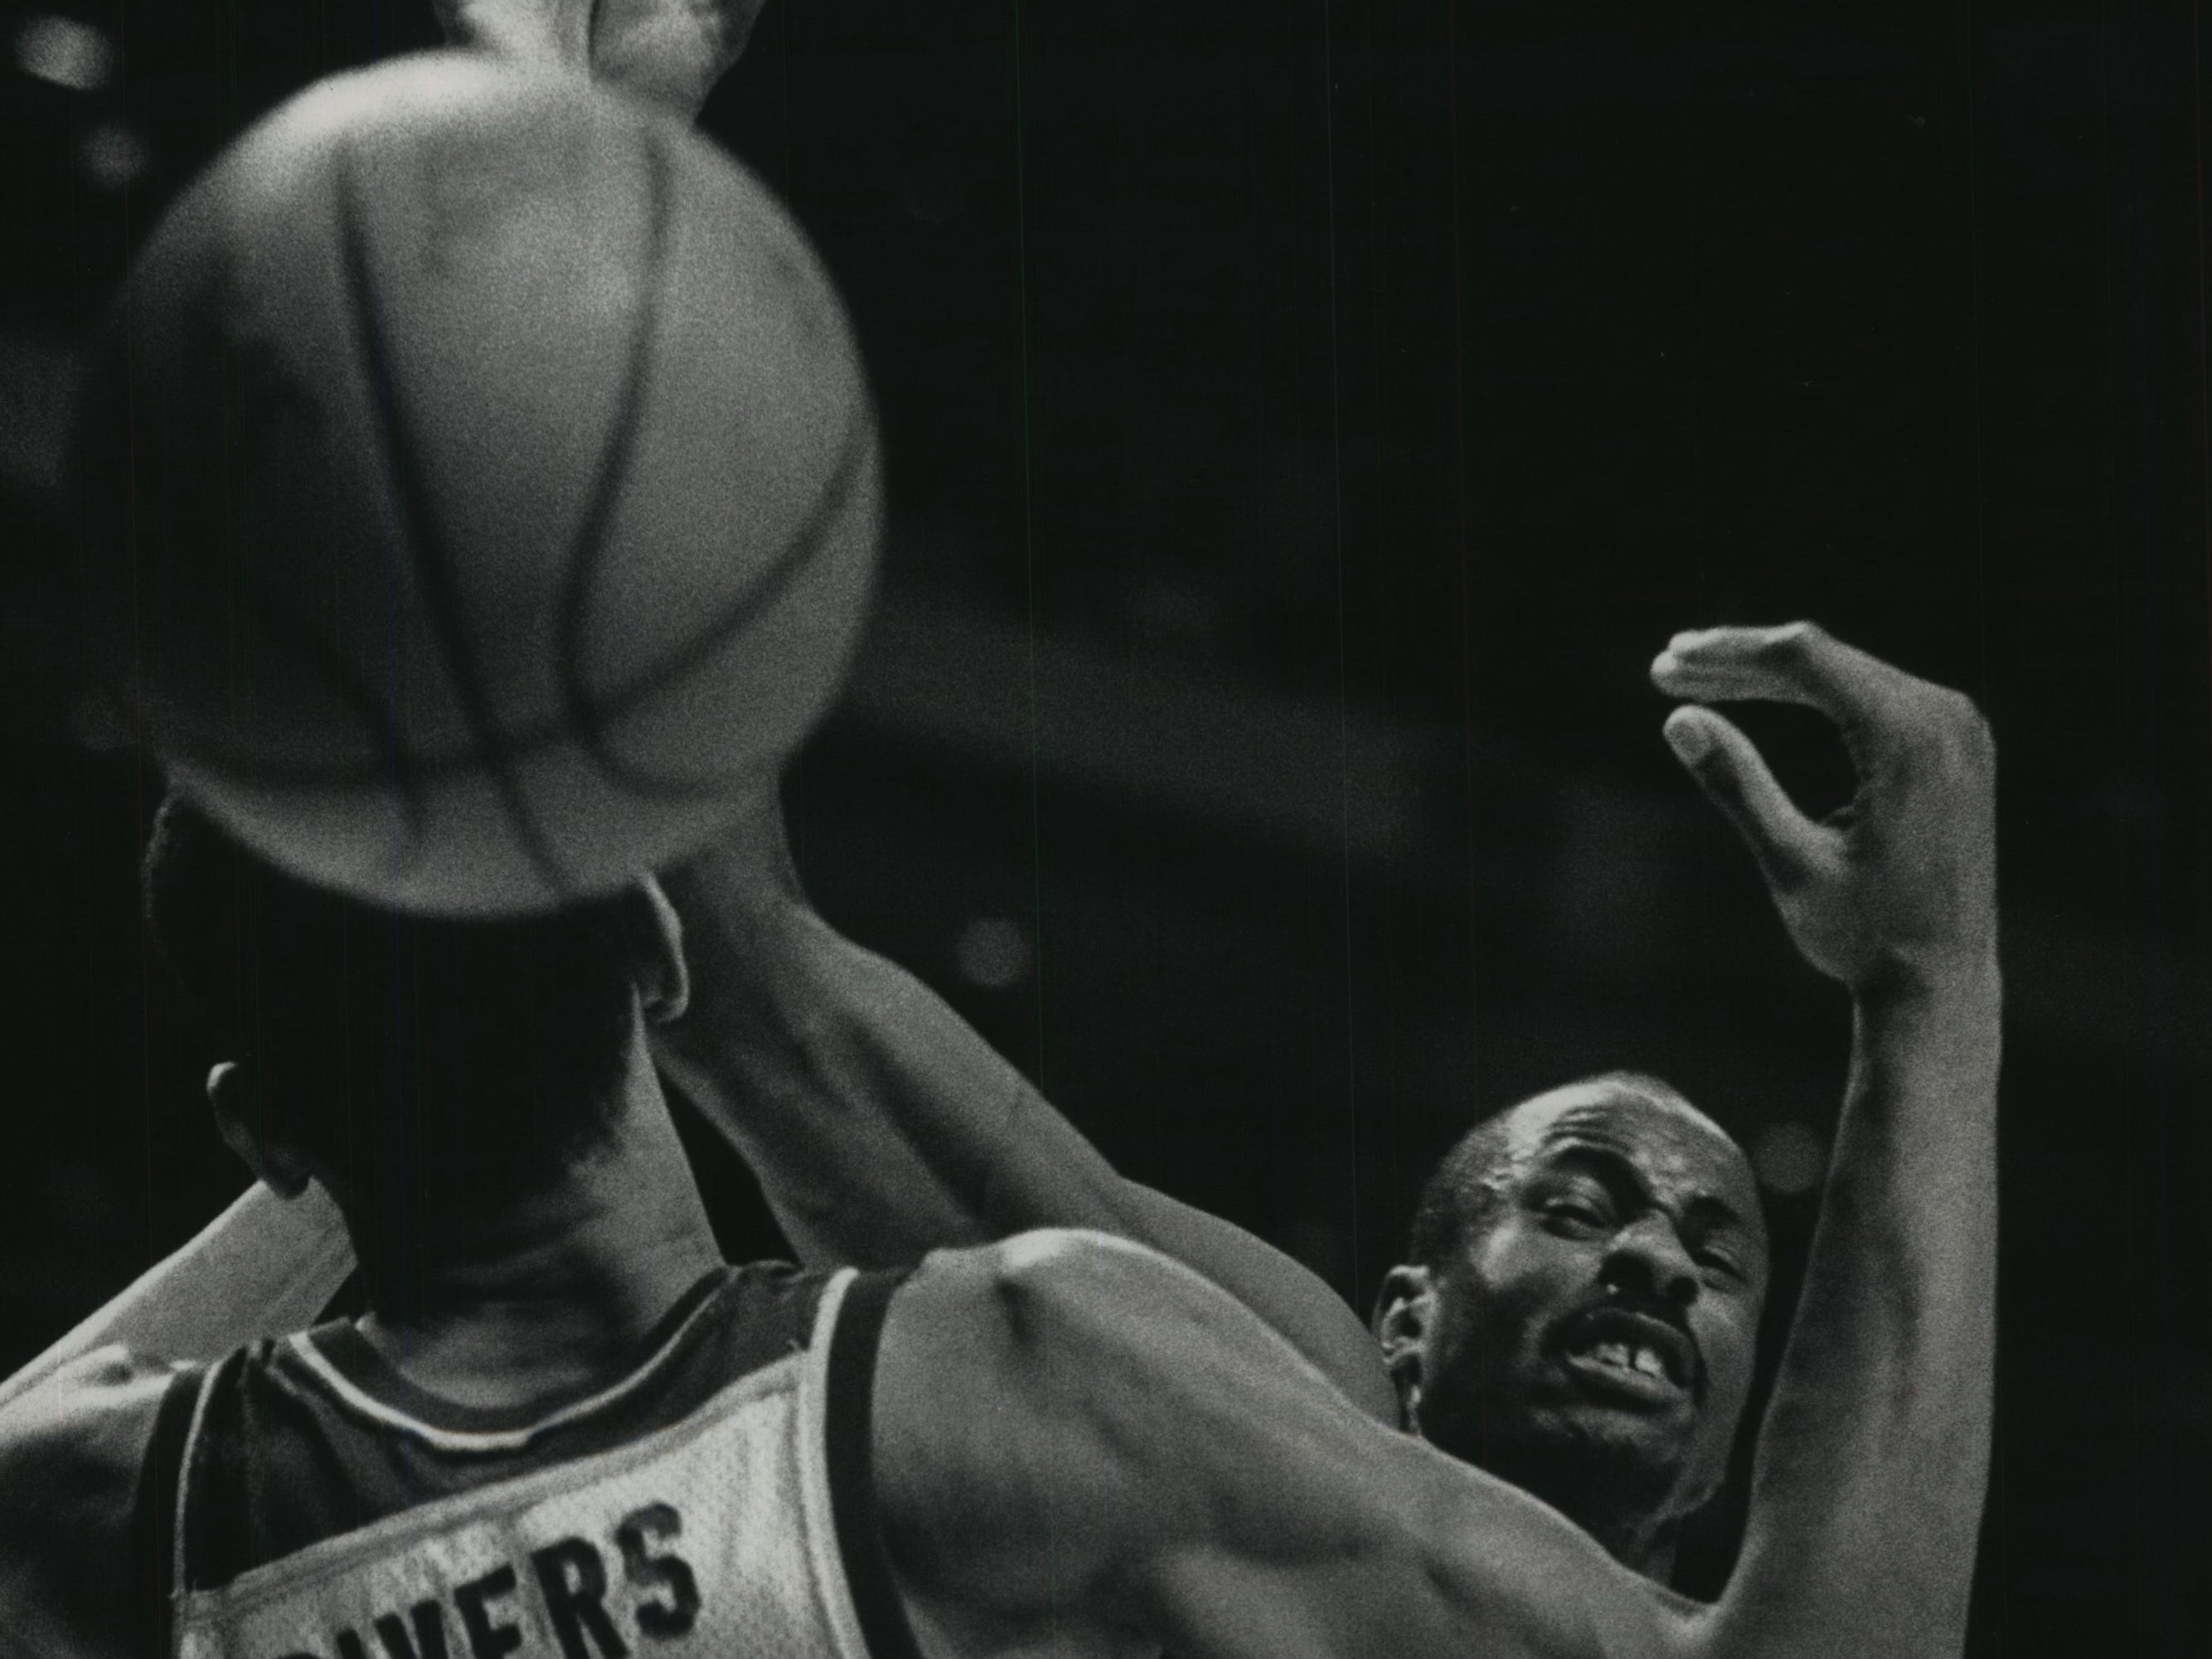 1989: Former Marquette star Doc Rivers, playing for the Atlanta Hawks, battles the Bucks' Sidney Moncrief for a loose ball during Game 4 of the first round of the Eastern Conference playoffs on at the Bradley Center on May 5, 1989. The Bucks lost Game 4 to the Hawks in overtime, 113-106. Milwaukee rebounded to beat Atlanta in the first round, only to be swept by the Detroit Pistons in the semifinals. This photo was published in the May 6, 1989, Milwaukee Sentinel.